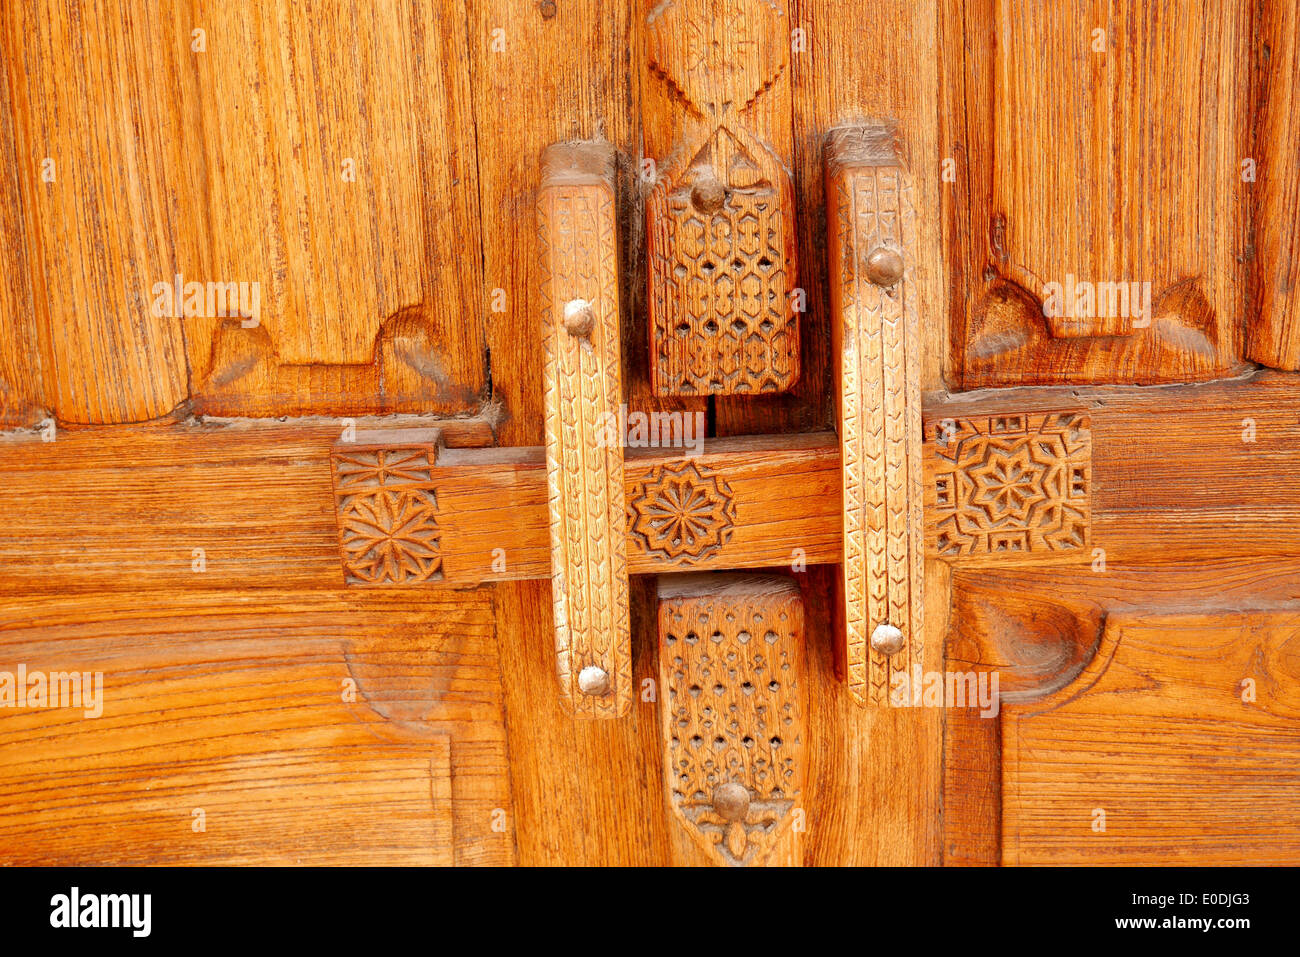 Wooden lock on an old door in the Beit Sheikh Isa bin Ali house in ...